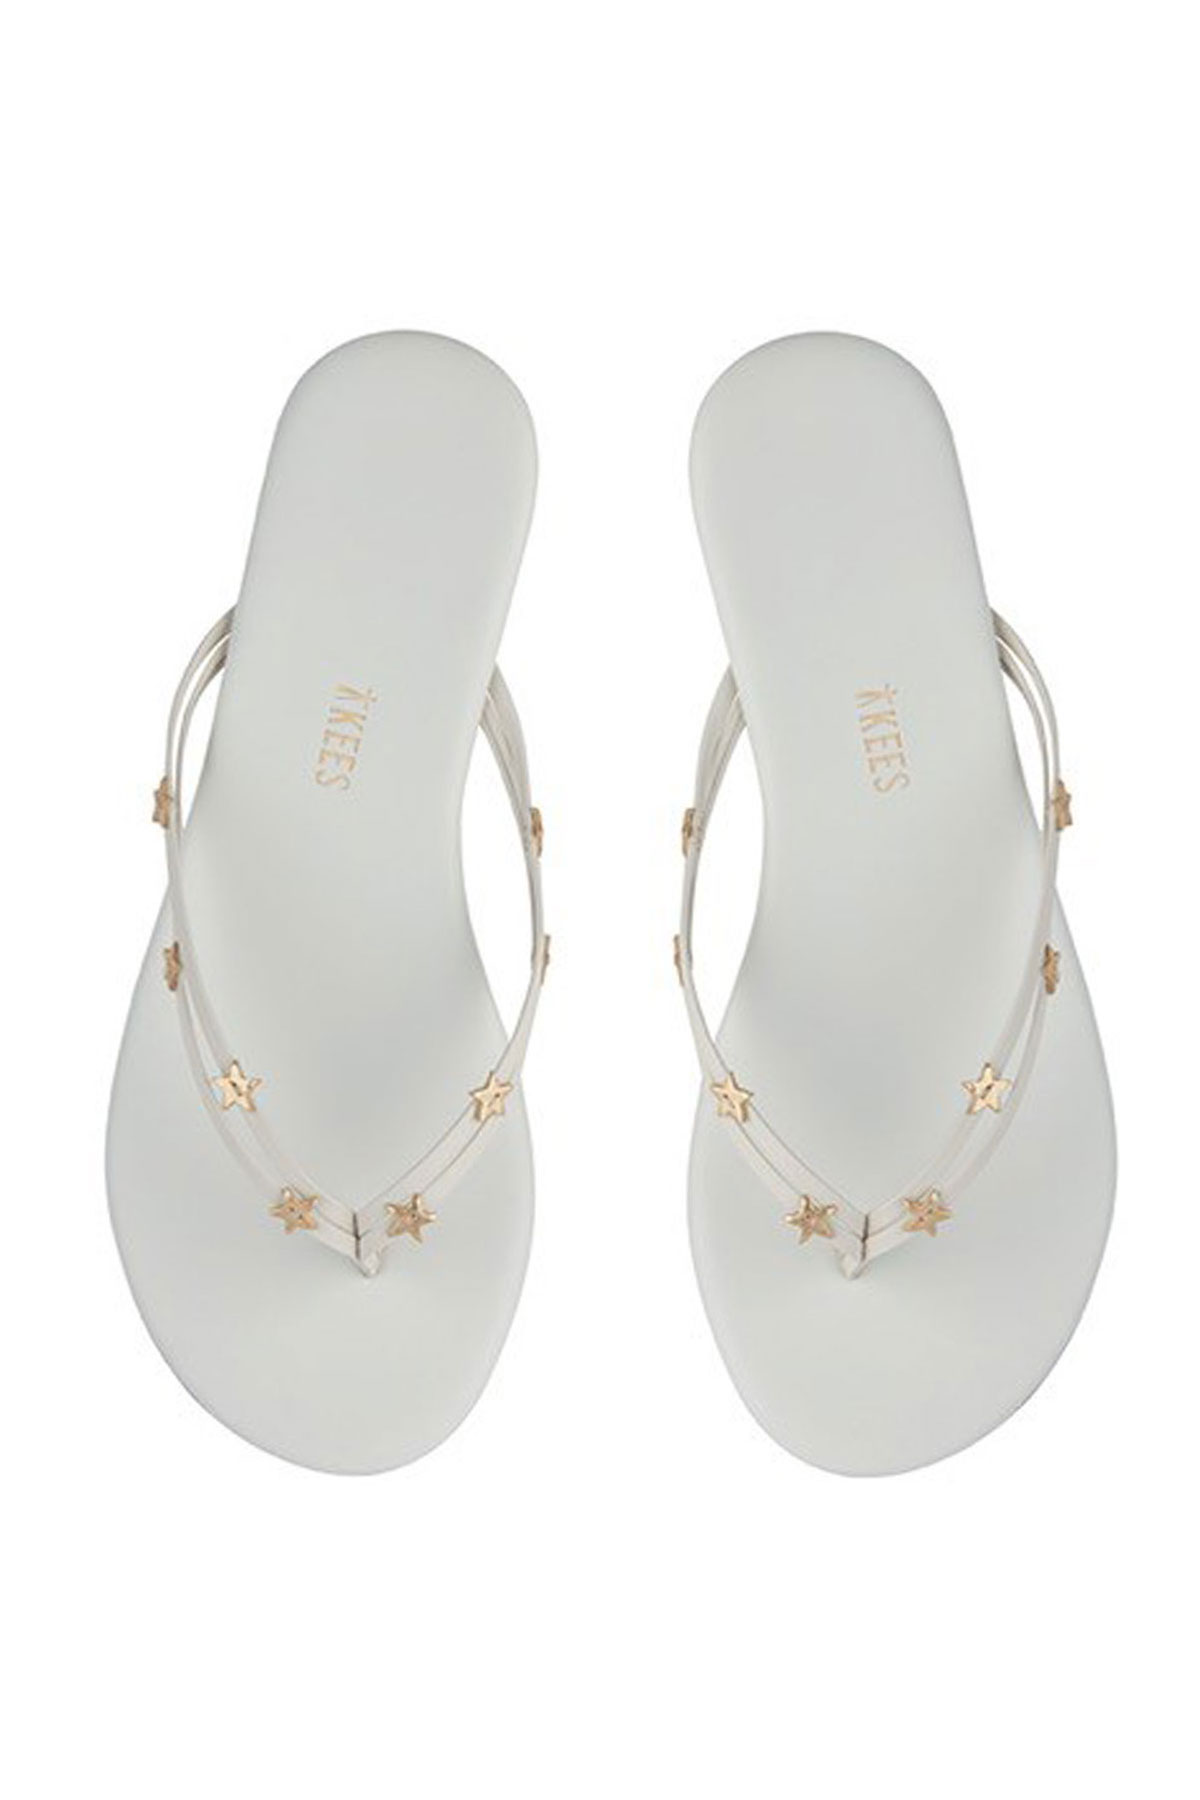 Duos Stars Leather Flip Flops - Milky Way 1